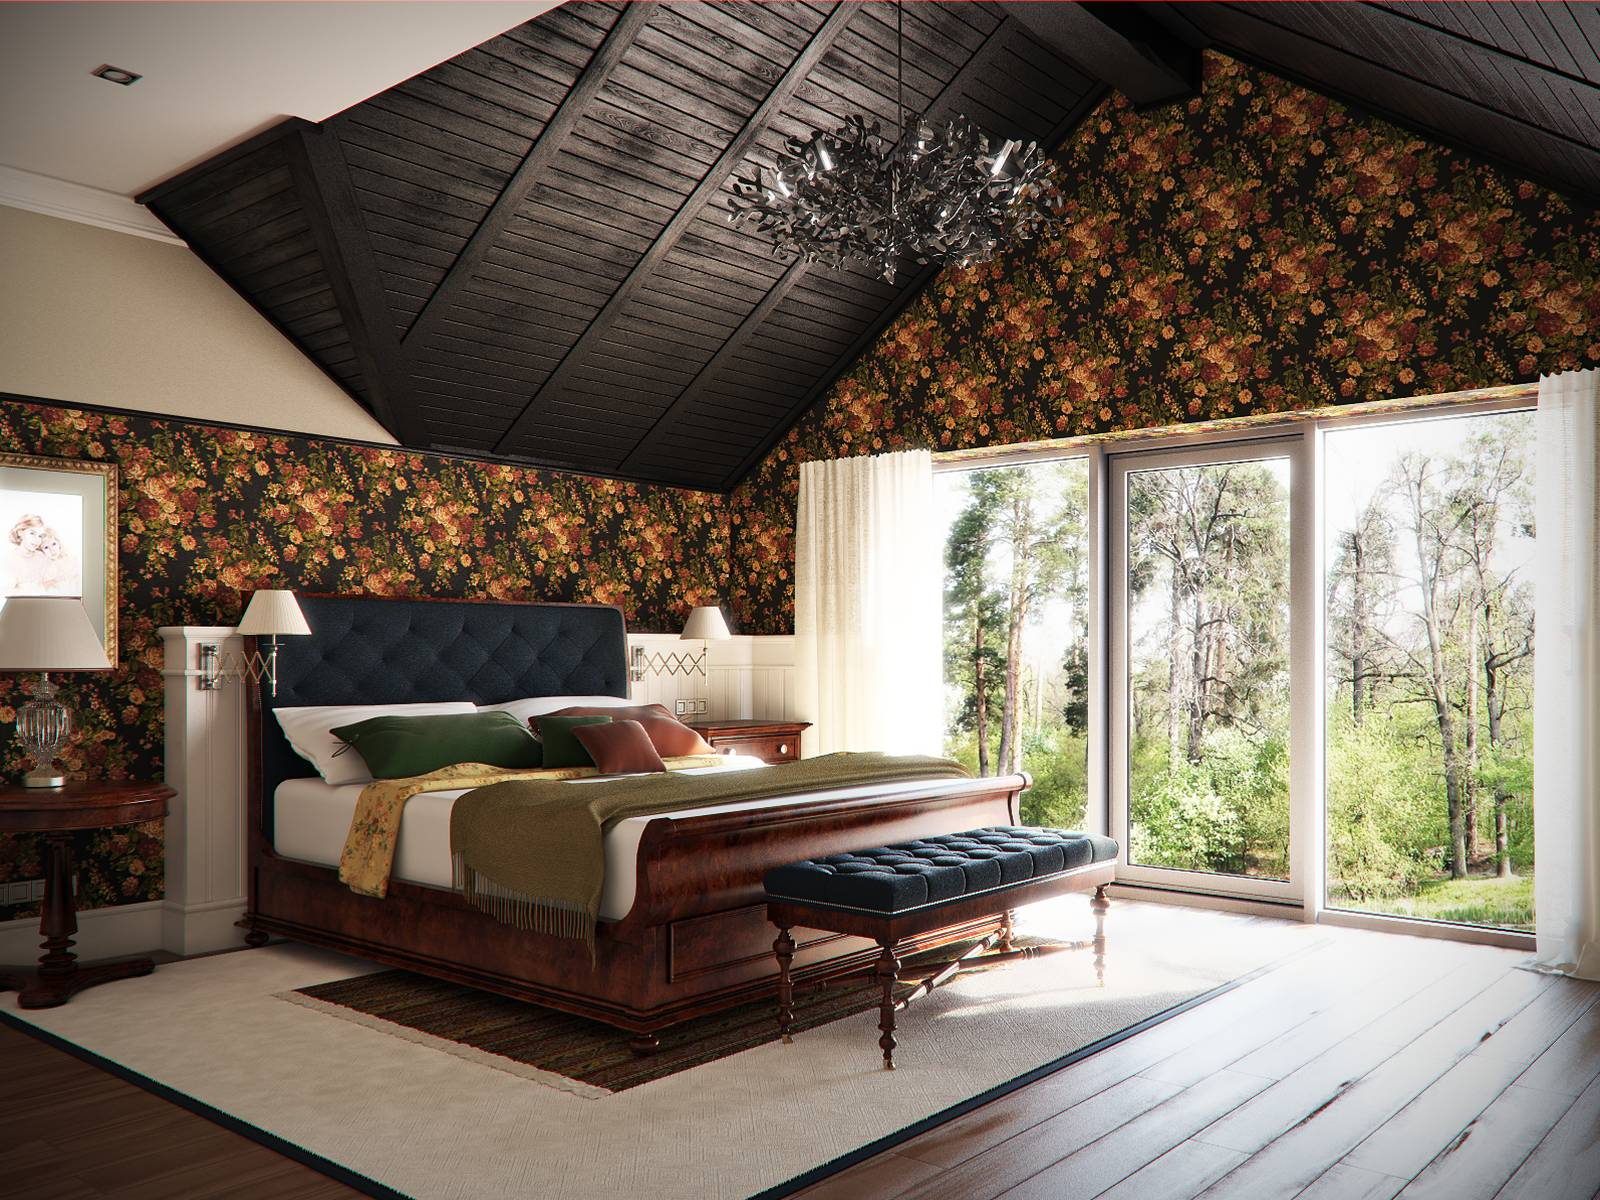 Bedroom decorating tips for a room that is not unlike any other